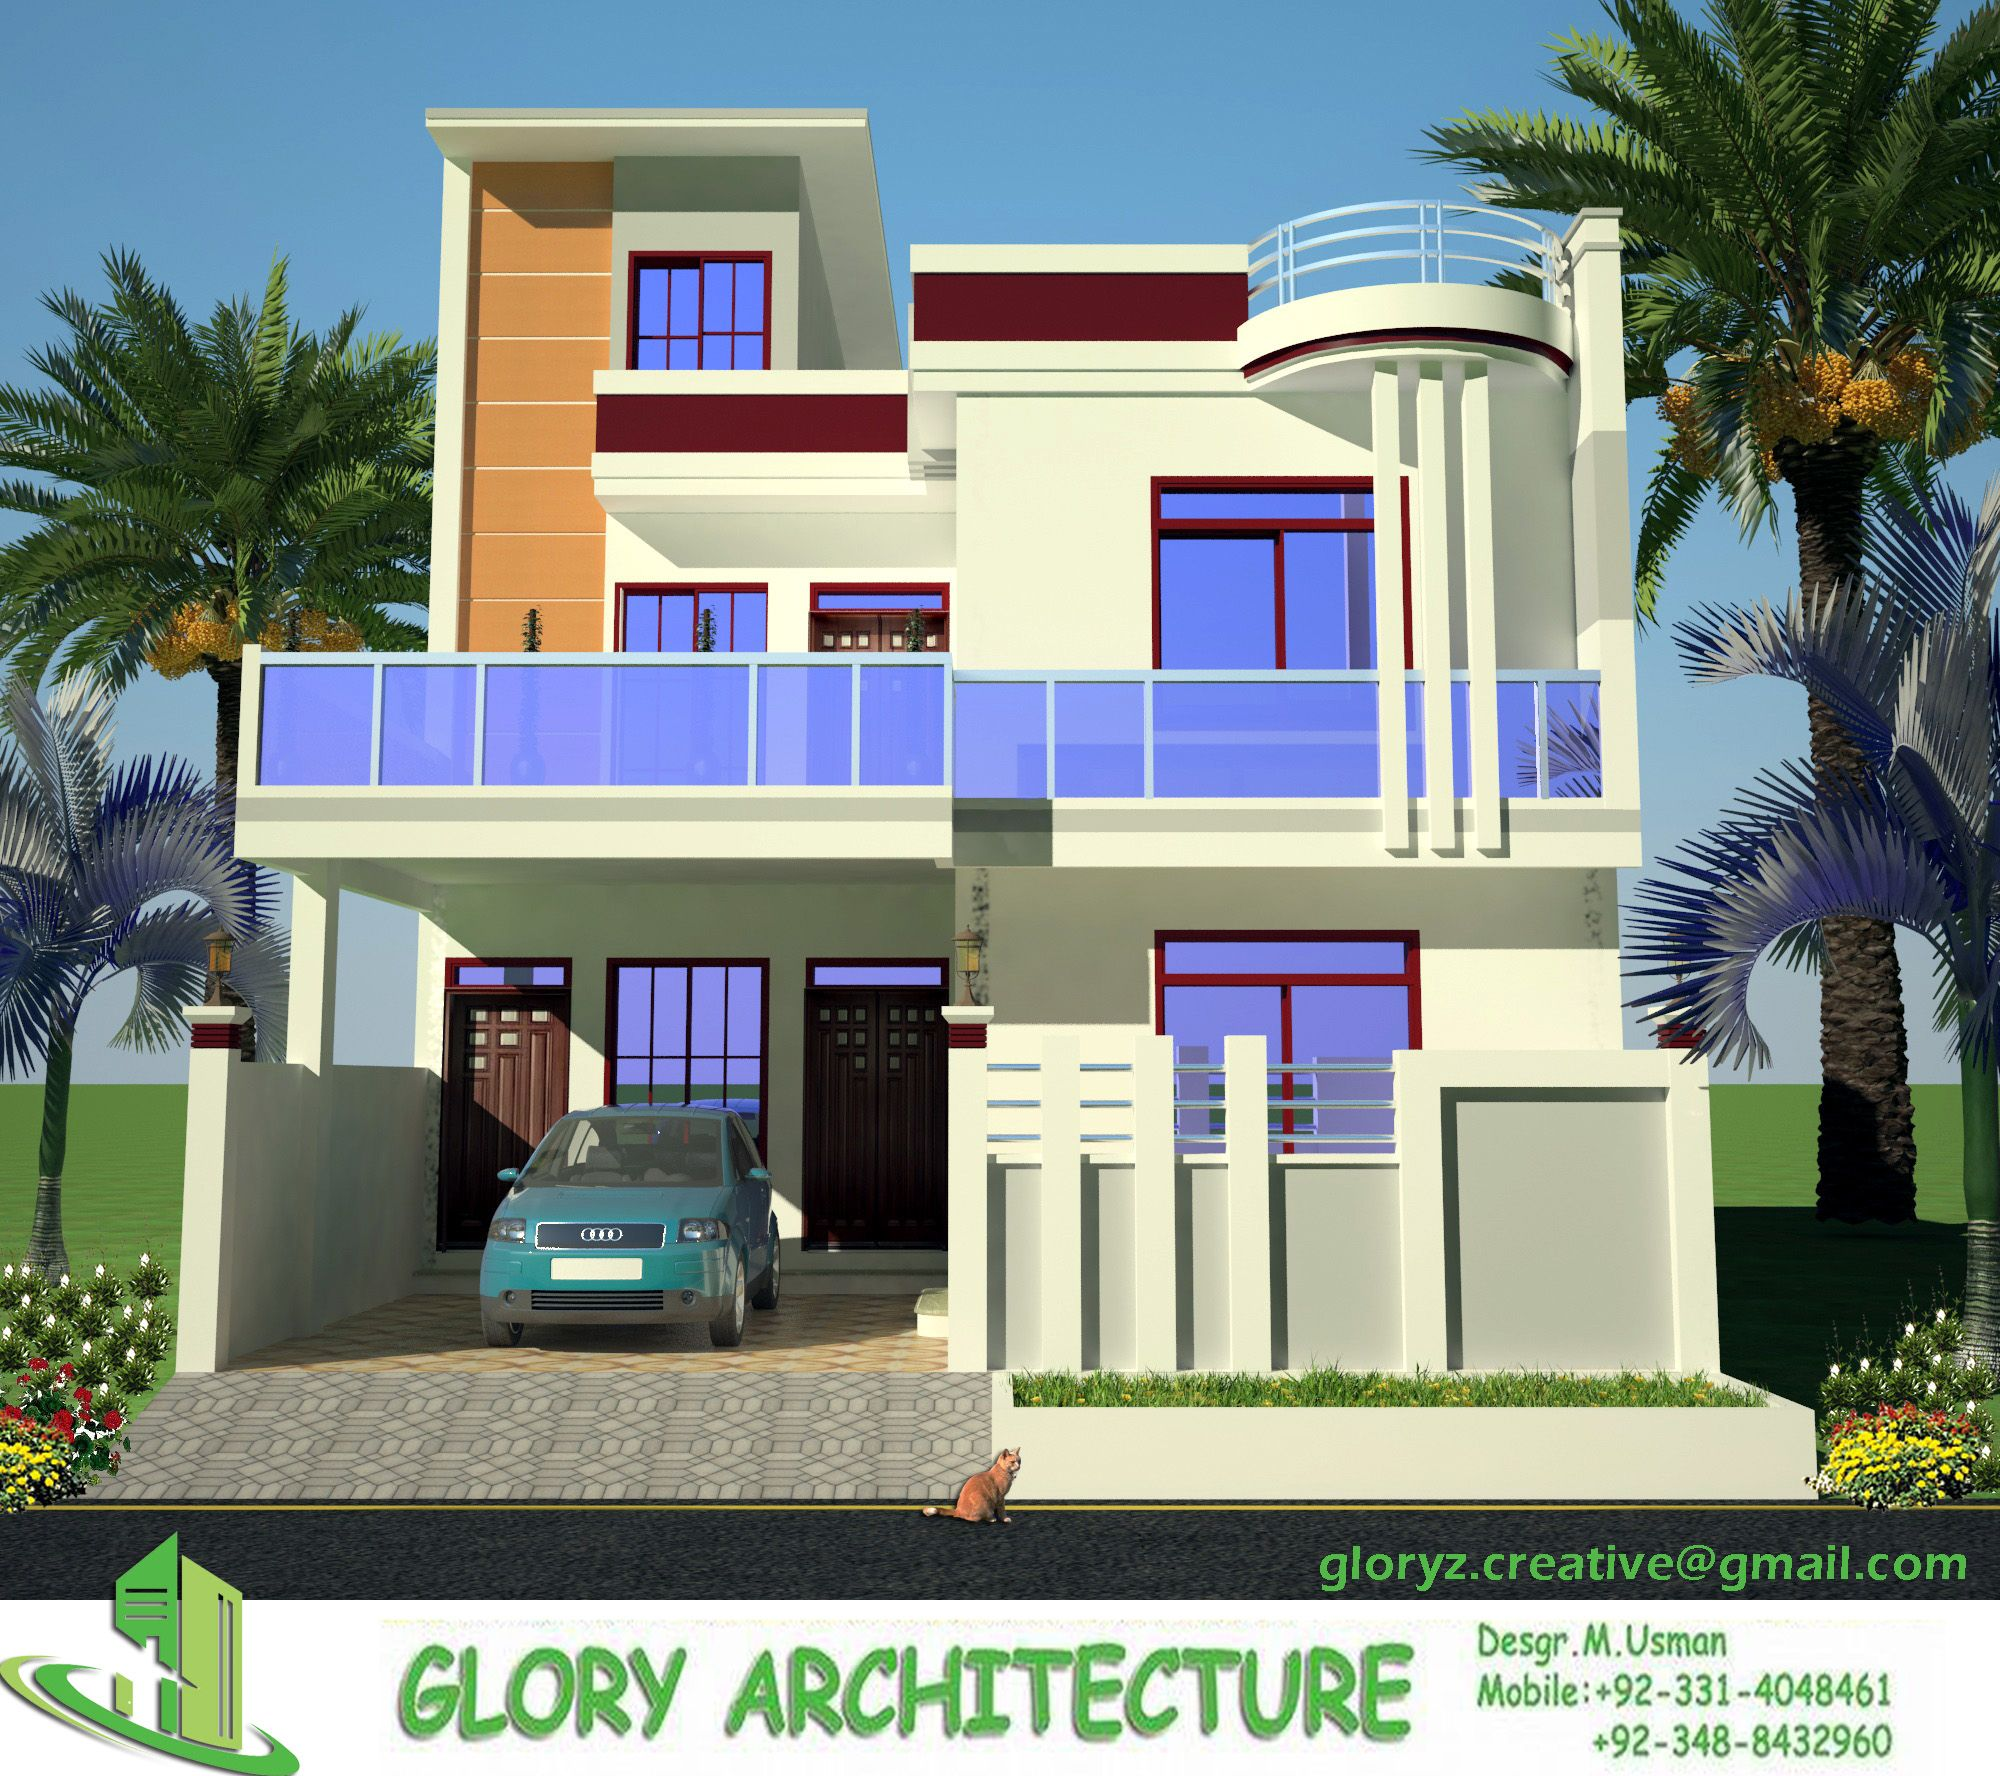 Home Design Ideas 3d: Jinnah Garden House Elevation